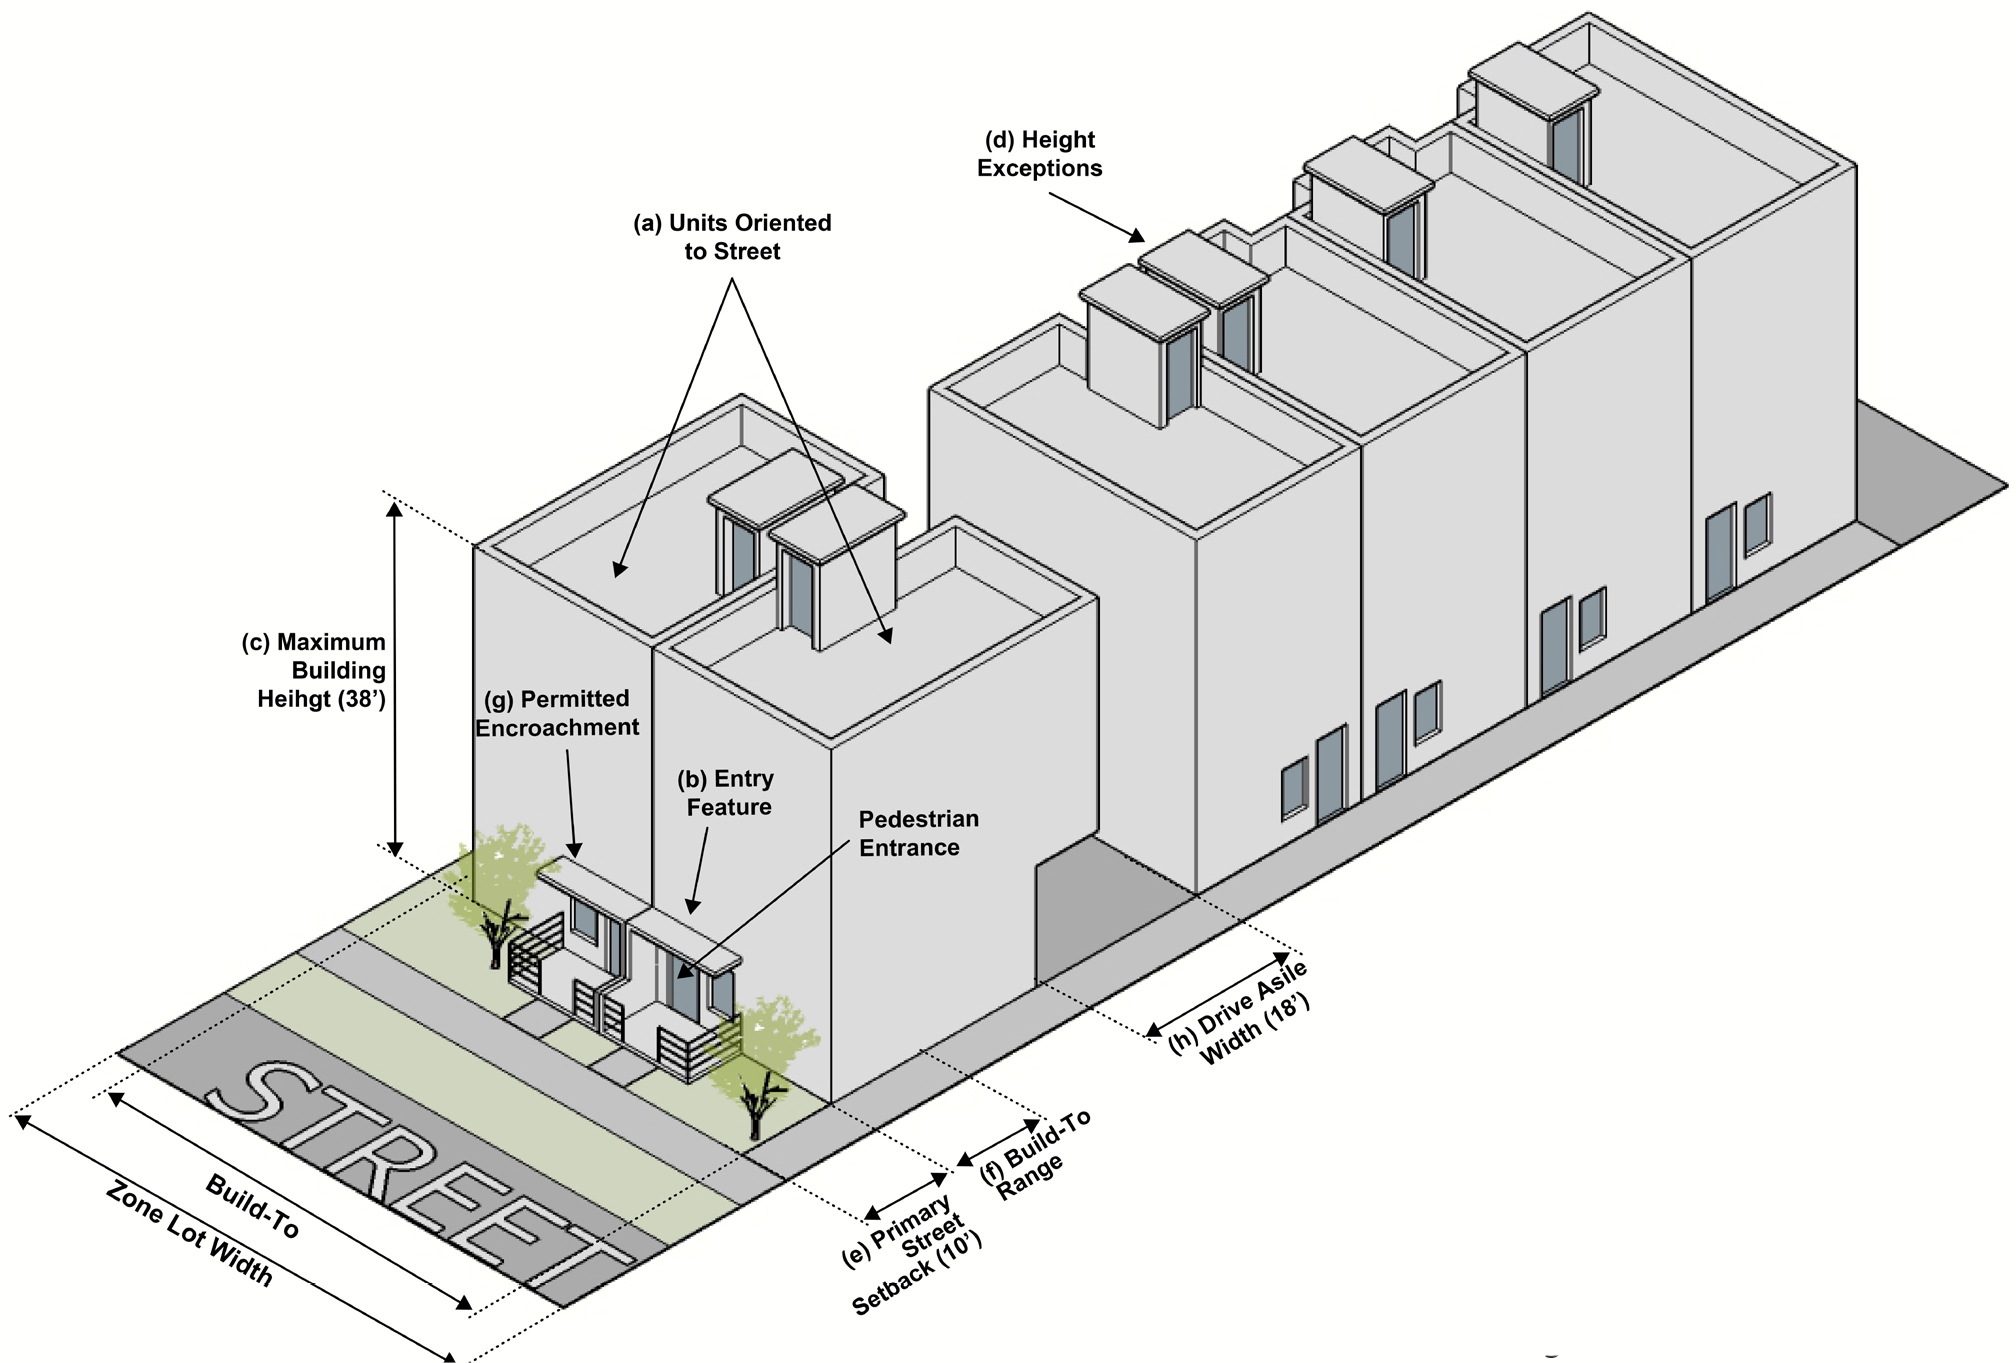 Diagram showing recommended requirements for urban townhouses in mixed use zone district